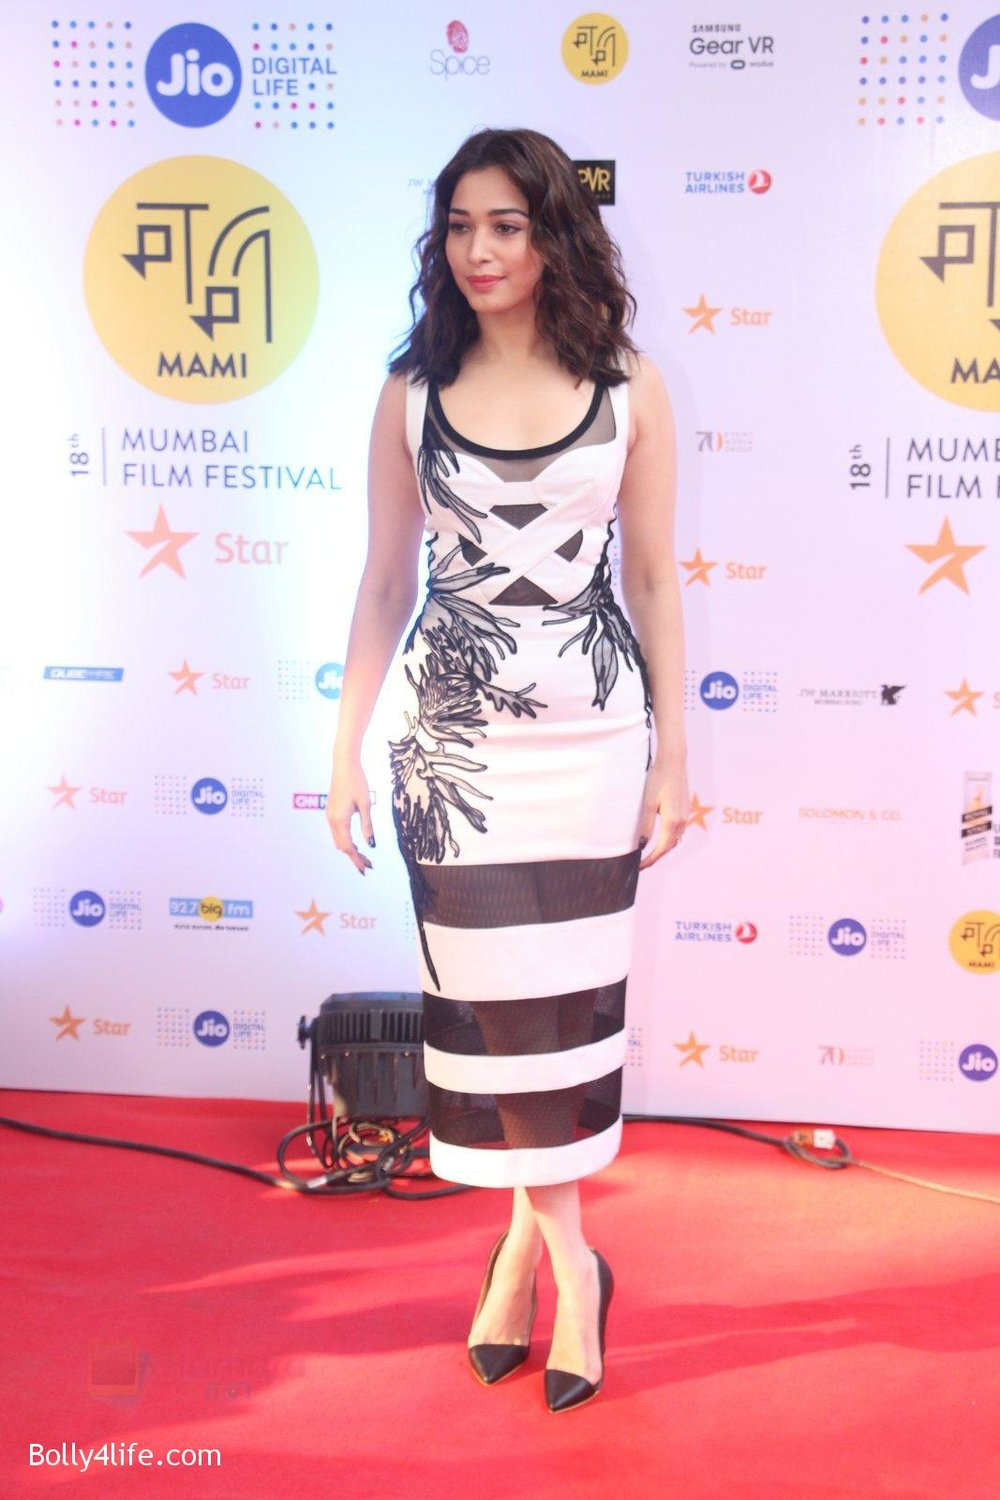 Tamannaah-Bhatia-at-MAMI-Film-Festival-2016-Day-2-on-22nd-Oct-2016-63.jpg